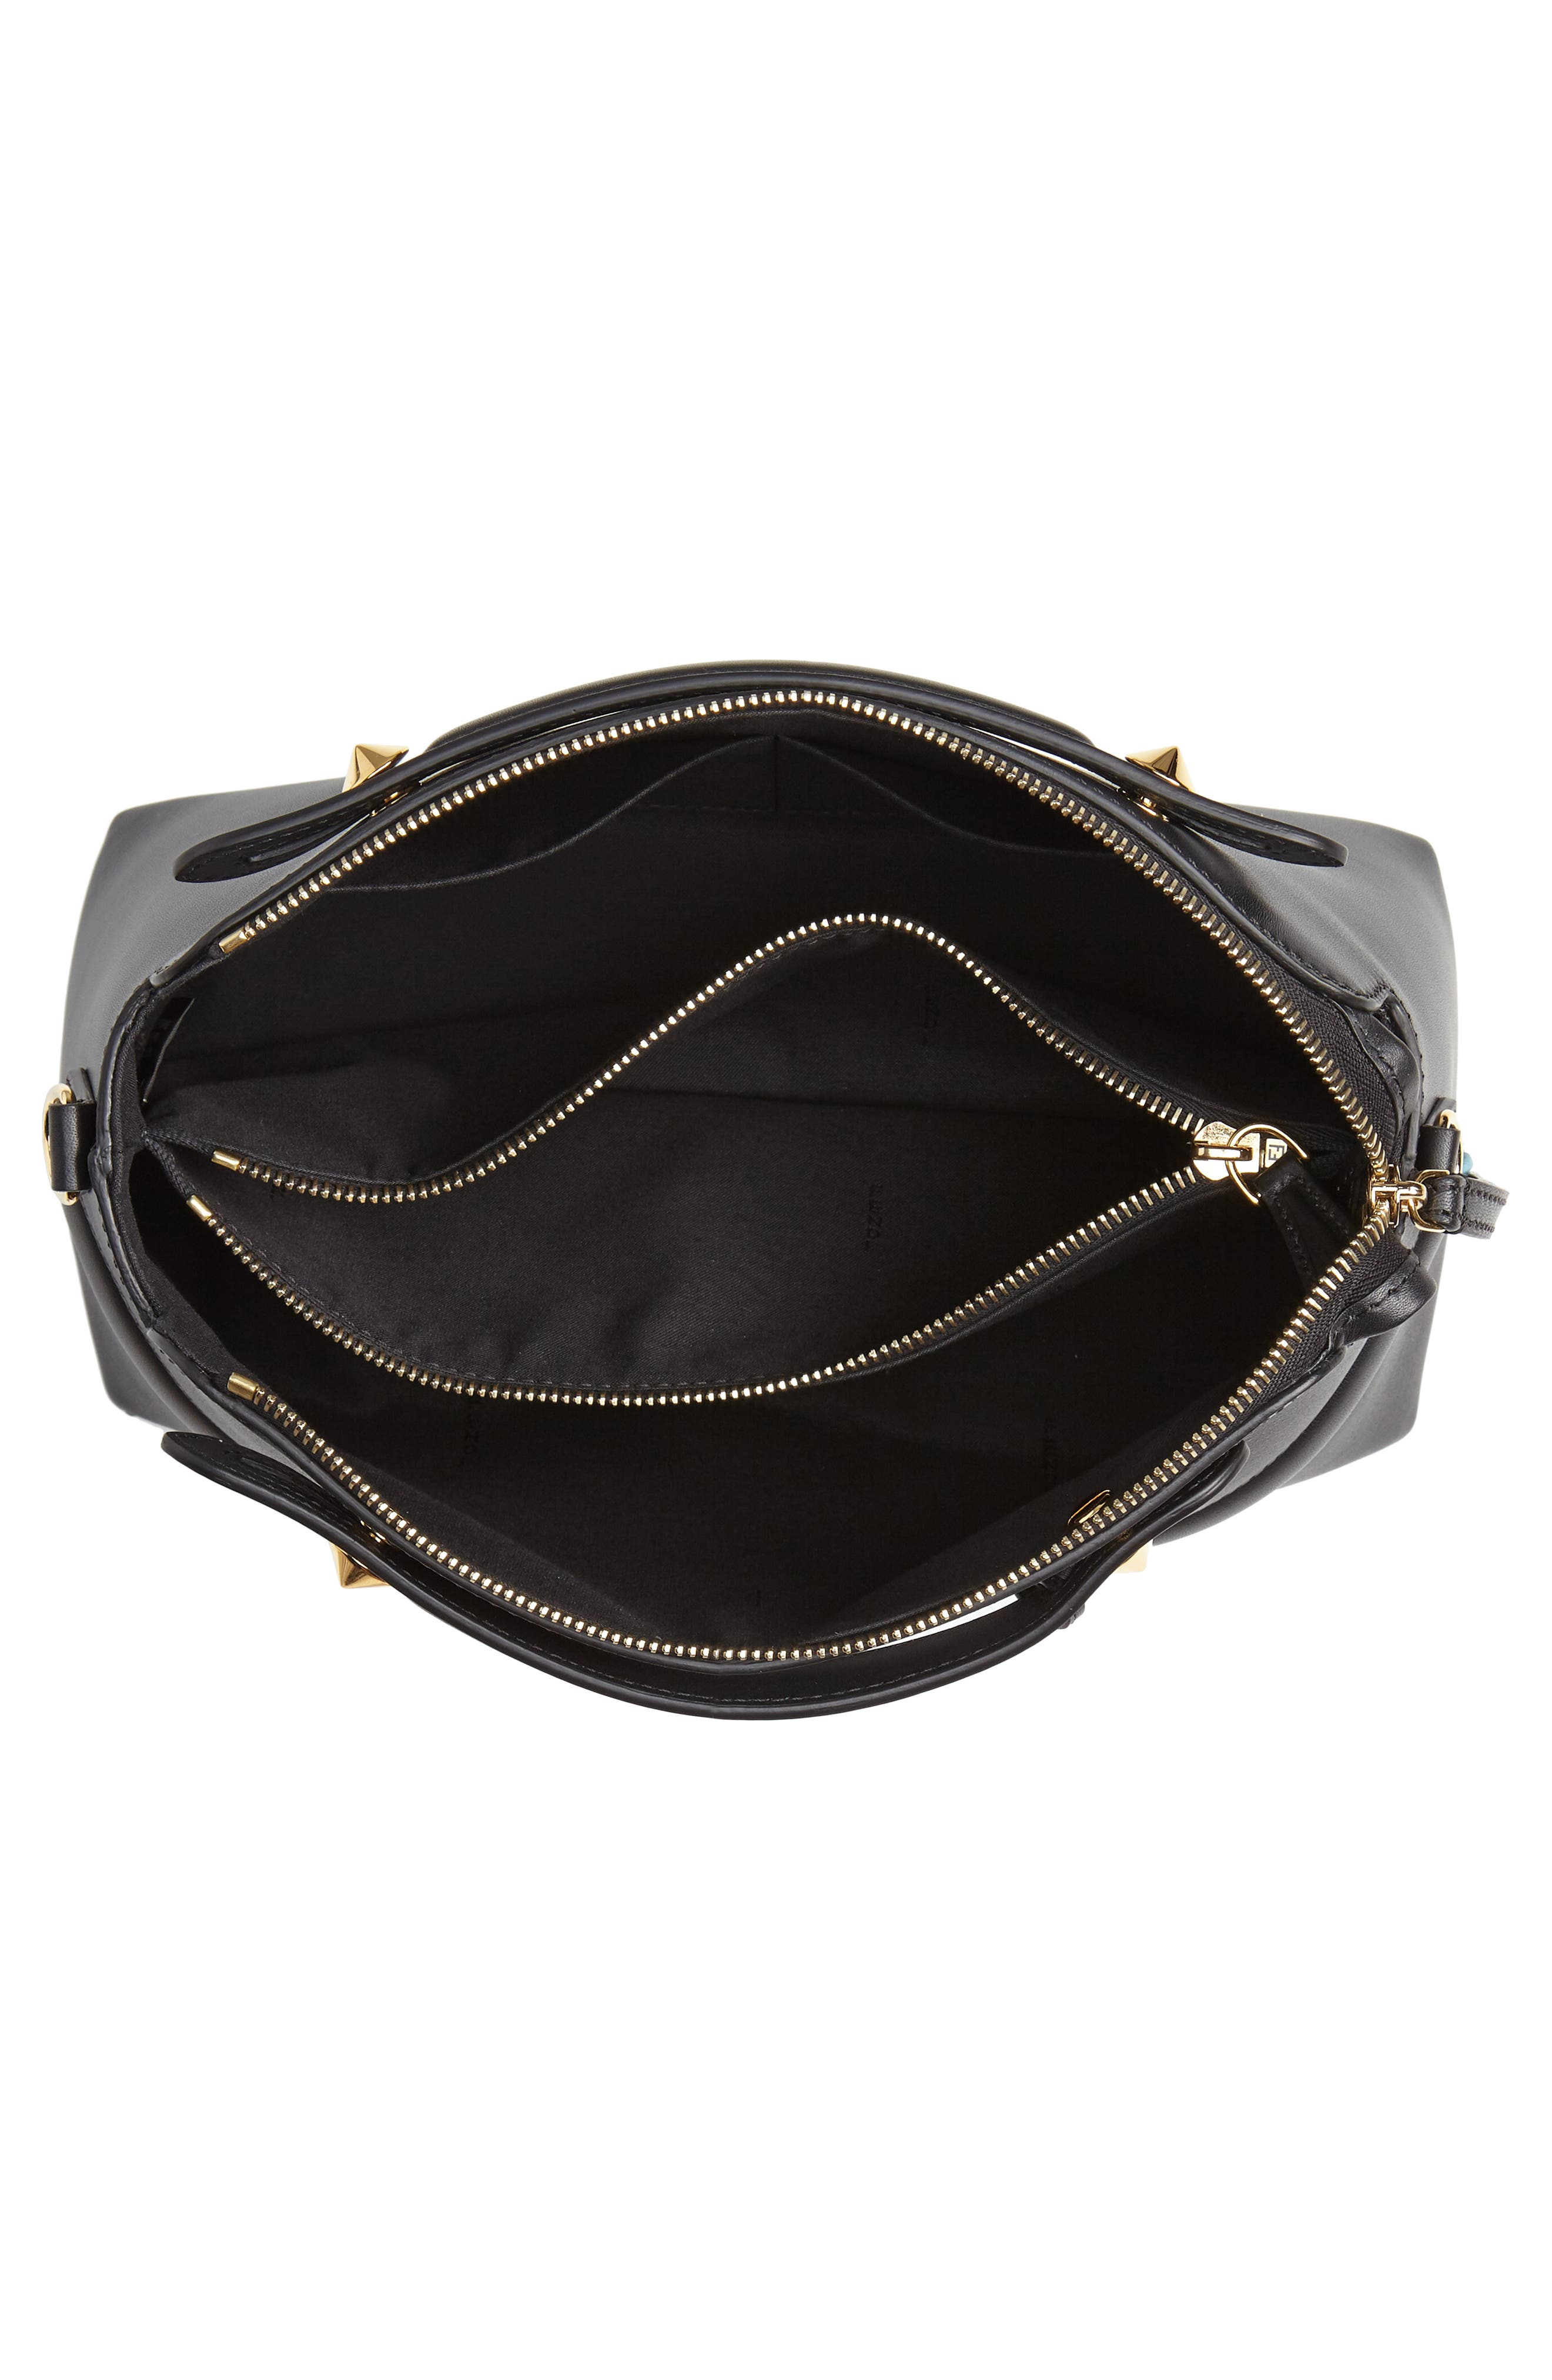 By the Way - Wonders Convertible Leather Shoulder Bag,                             Alternate thumbnail 4, color,                             NERO/ ORO SOFT